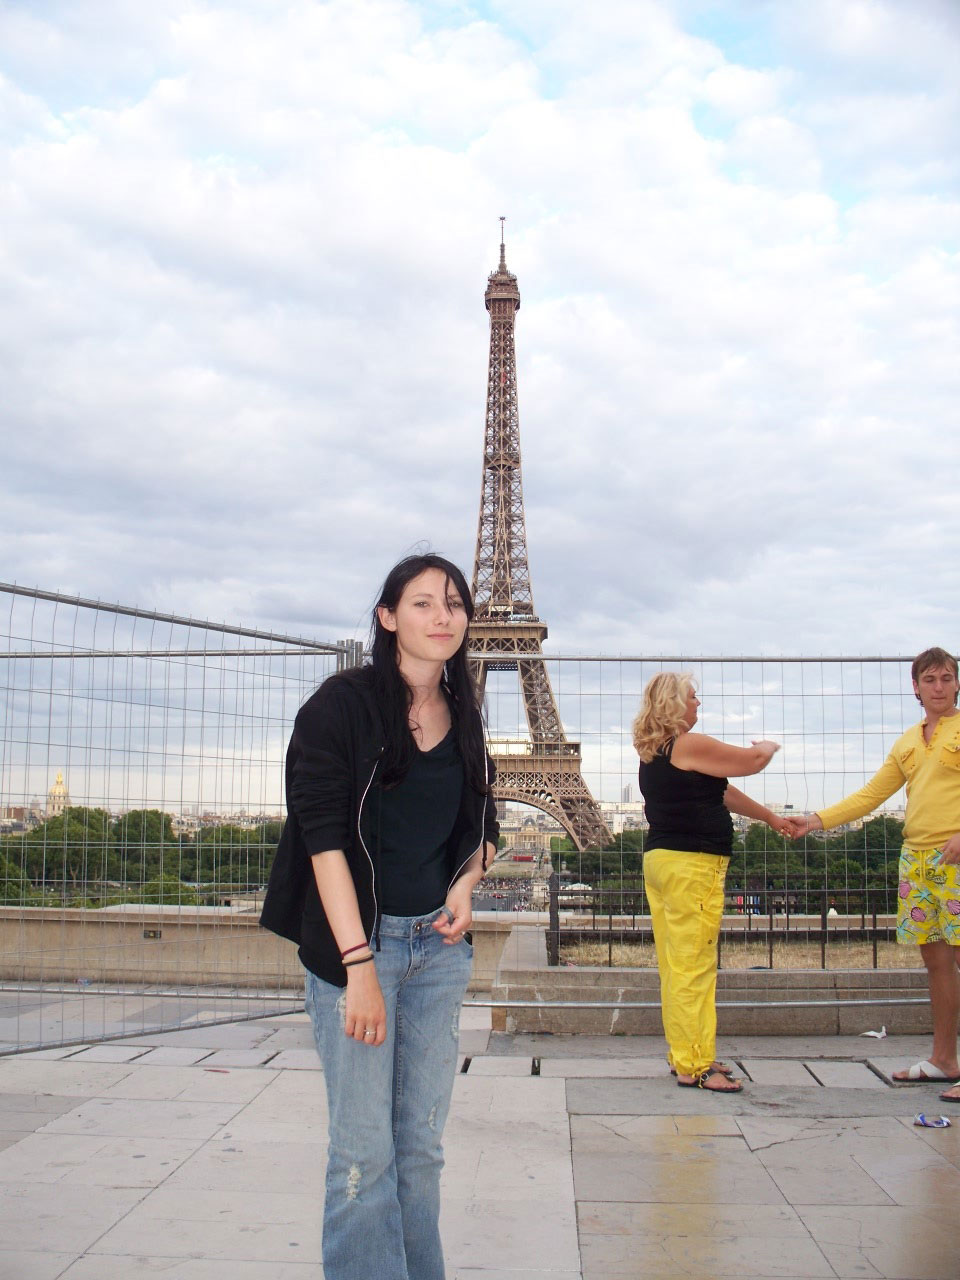 Me in Paris, 2009